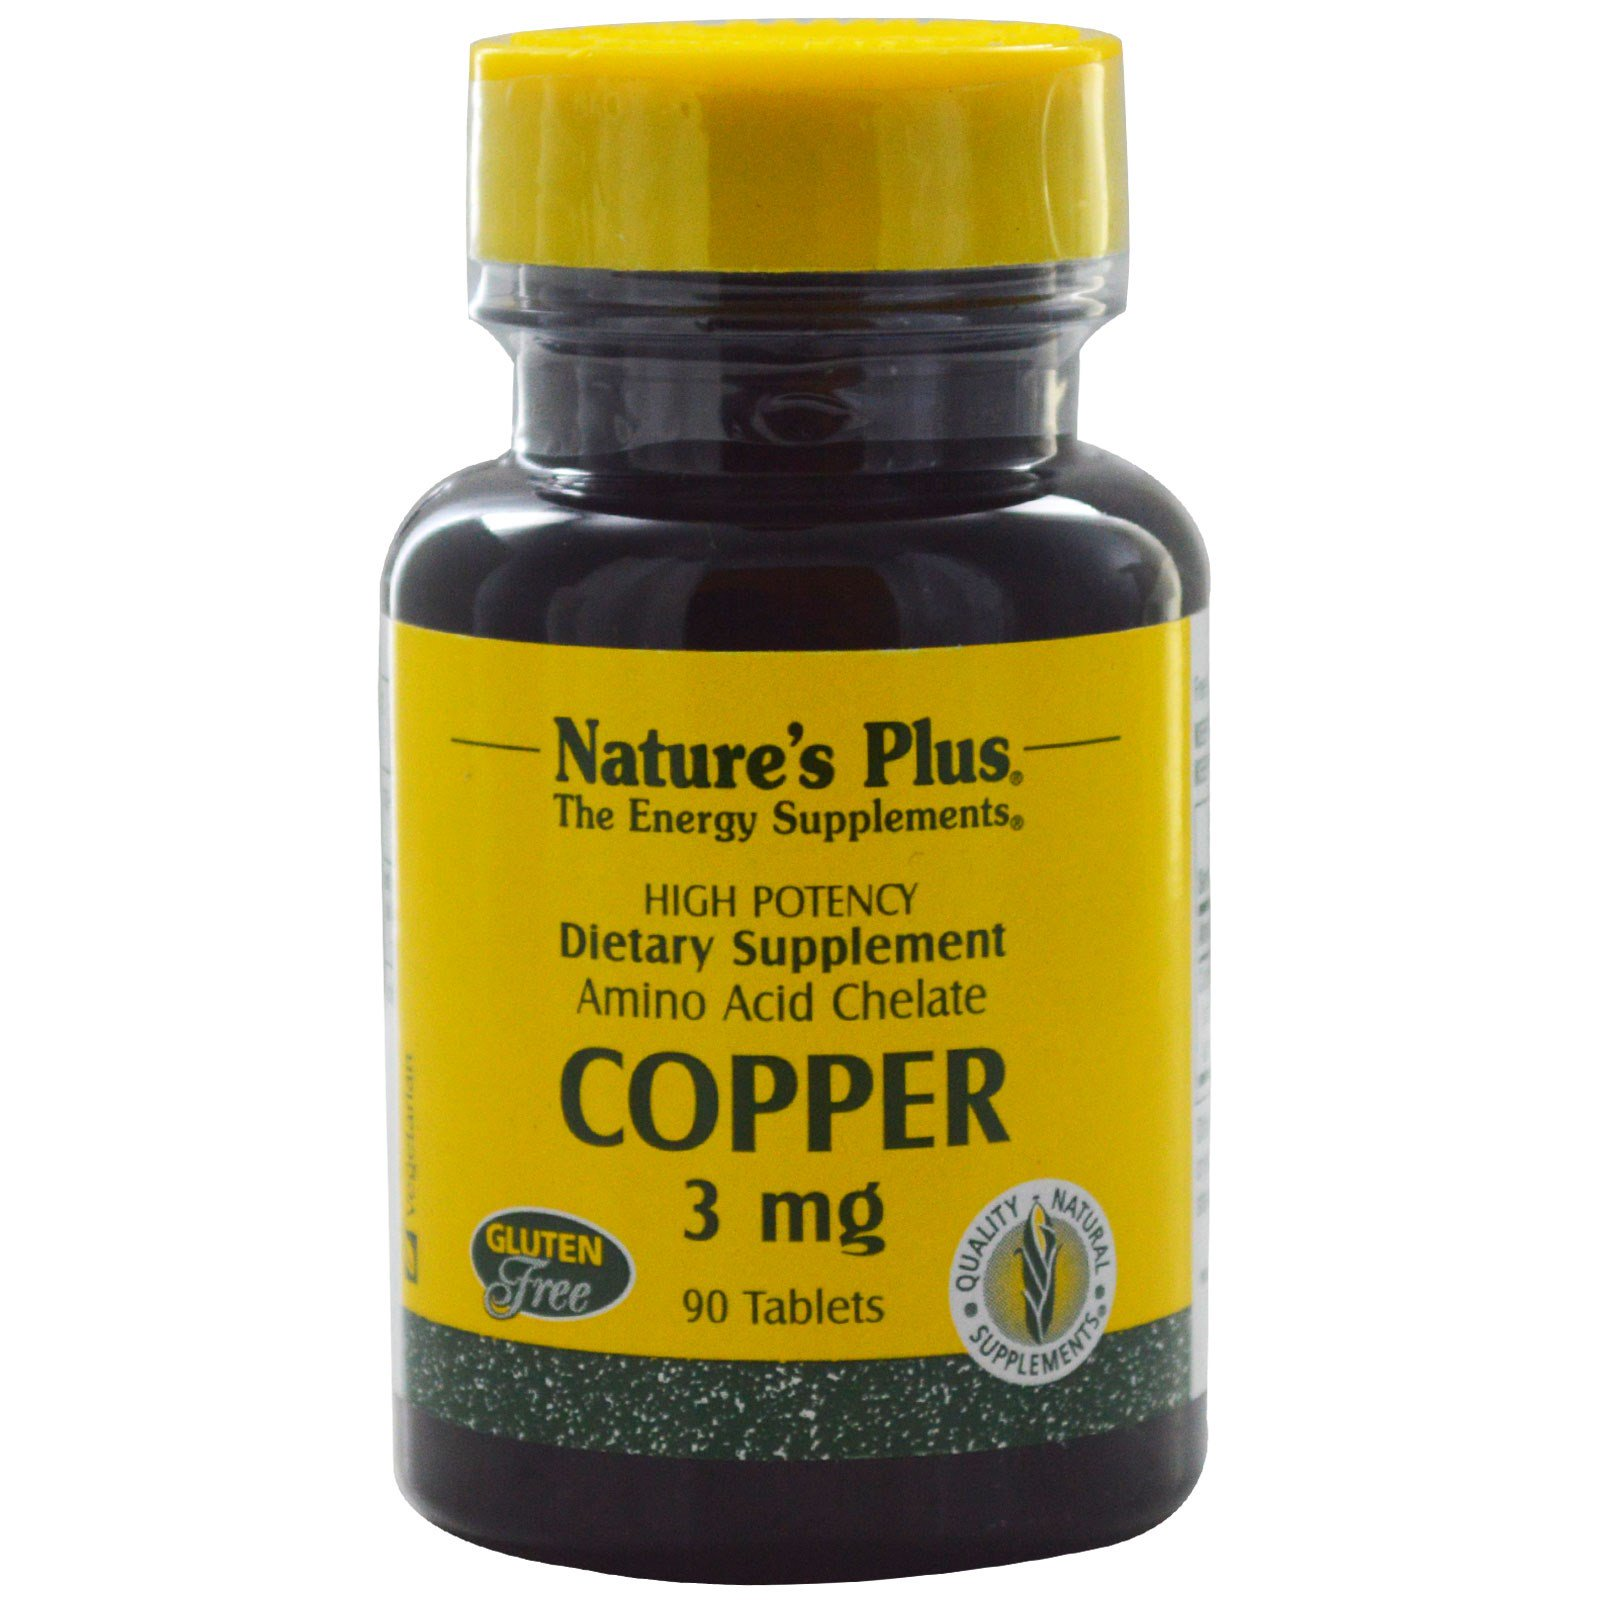 Image of Copper, 3 mg (90 Tablets) - Nature's Plus 0097467034303